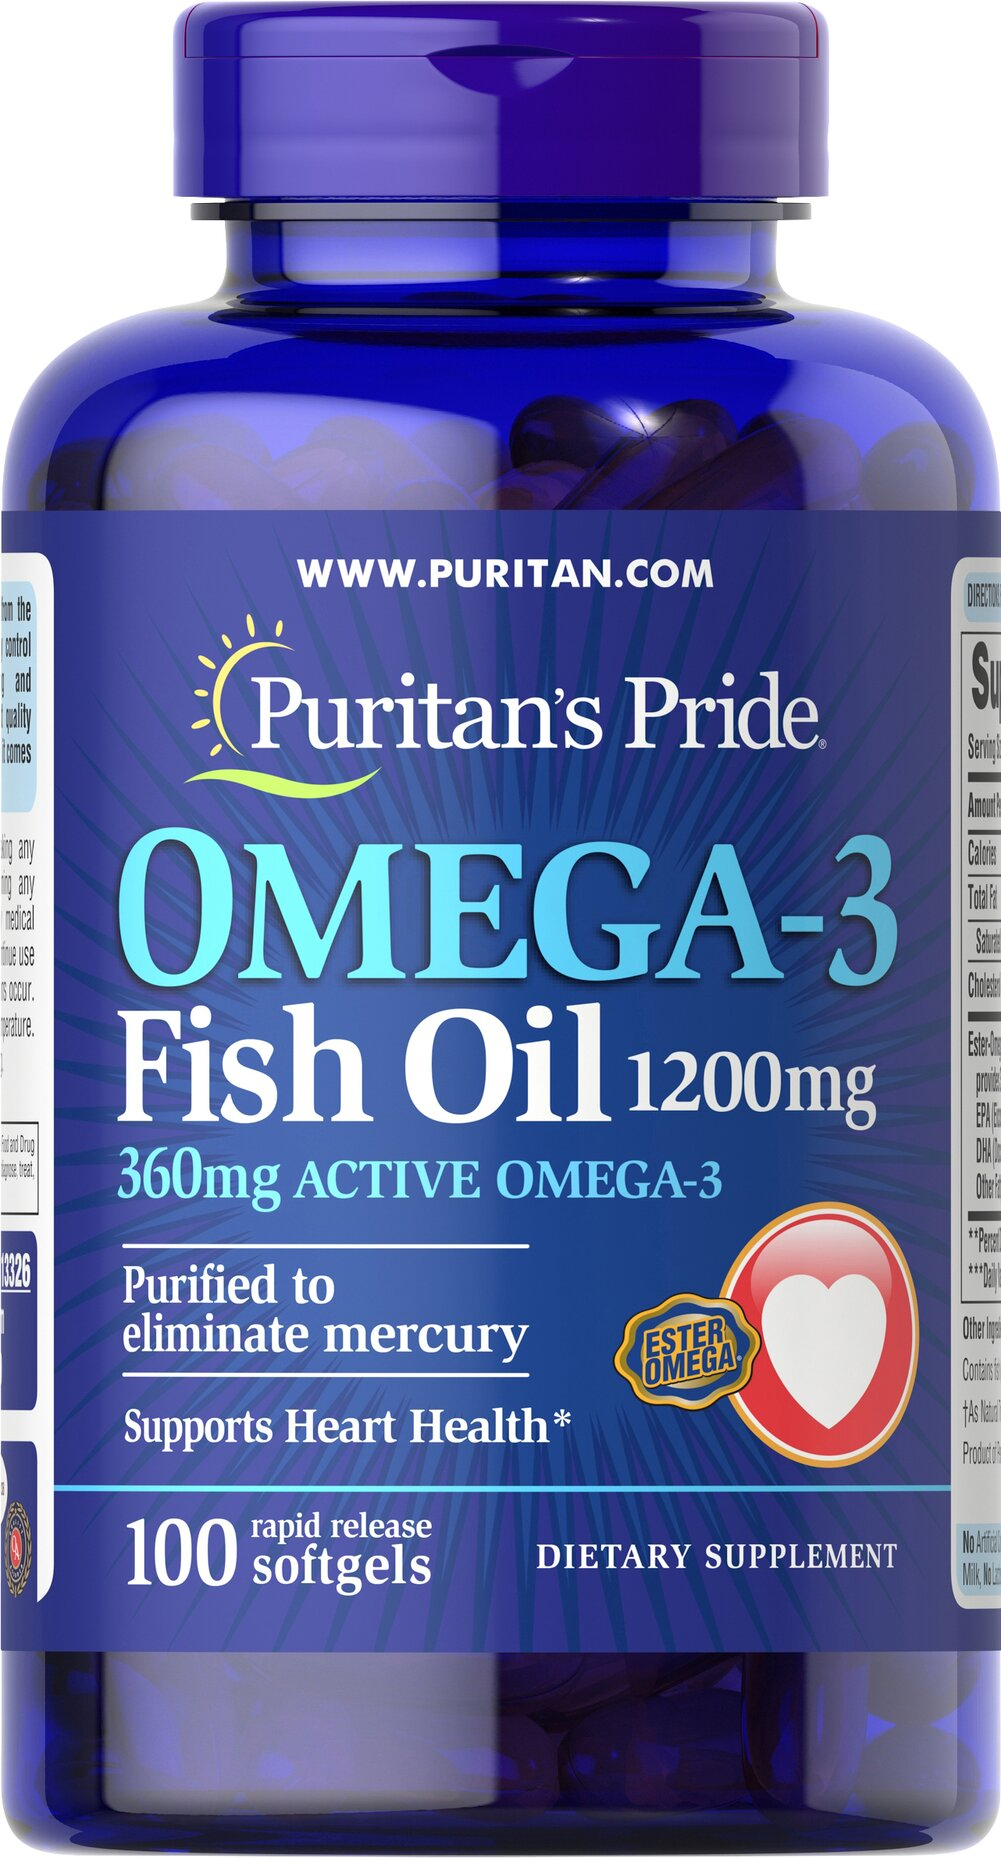 Omega-3 Fish Oil 1200 mg (360 mg Active Omega-3) <p><span></span></p><p>This Ester-Omega® Fish Oil provides 360mg of total omega-3 fatty acids, comprising of EPA, DHA and other fatty acids. EPA and DHA fatty acids support heart health.** Purified to eliminate mercury. Rapid release softgels.</p><p></p><p></p> 100 Softgels 1200 mg $10.14